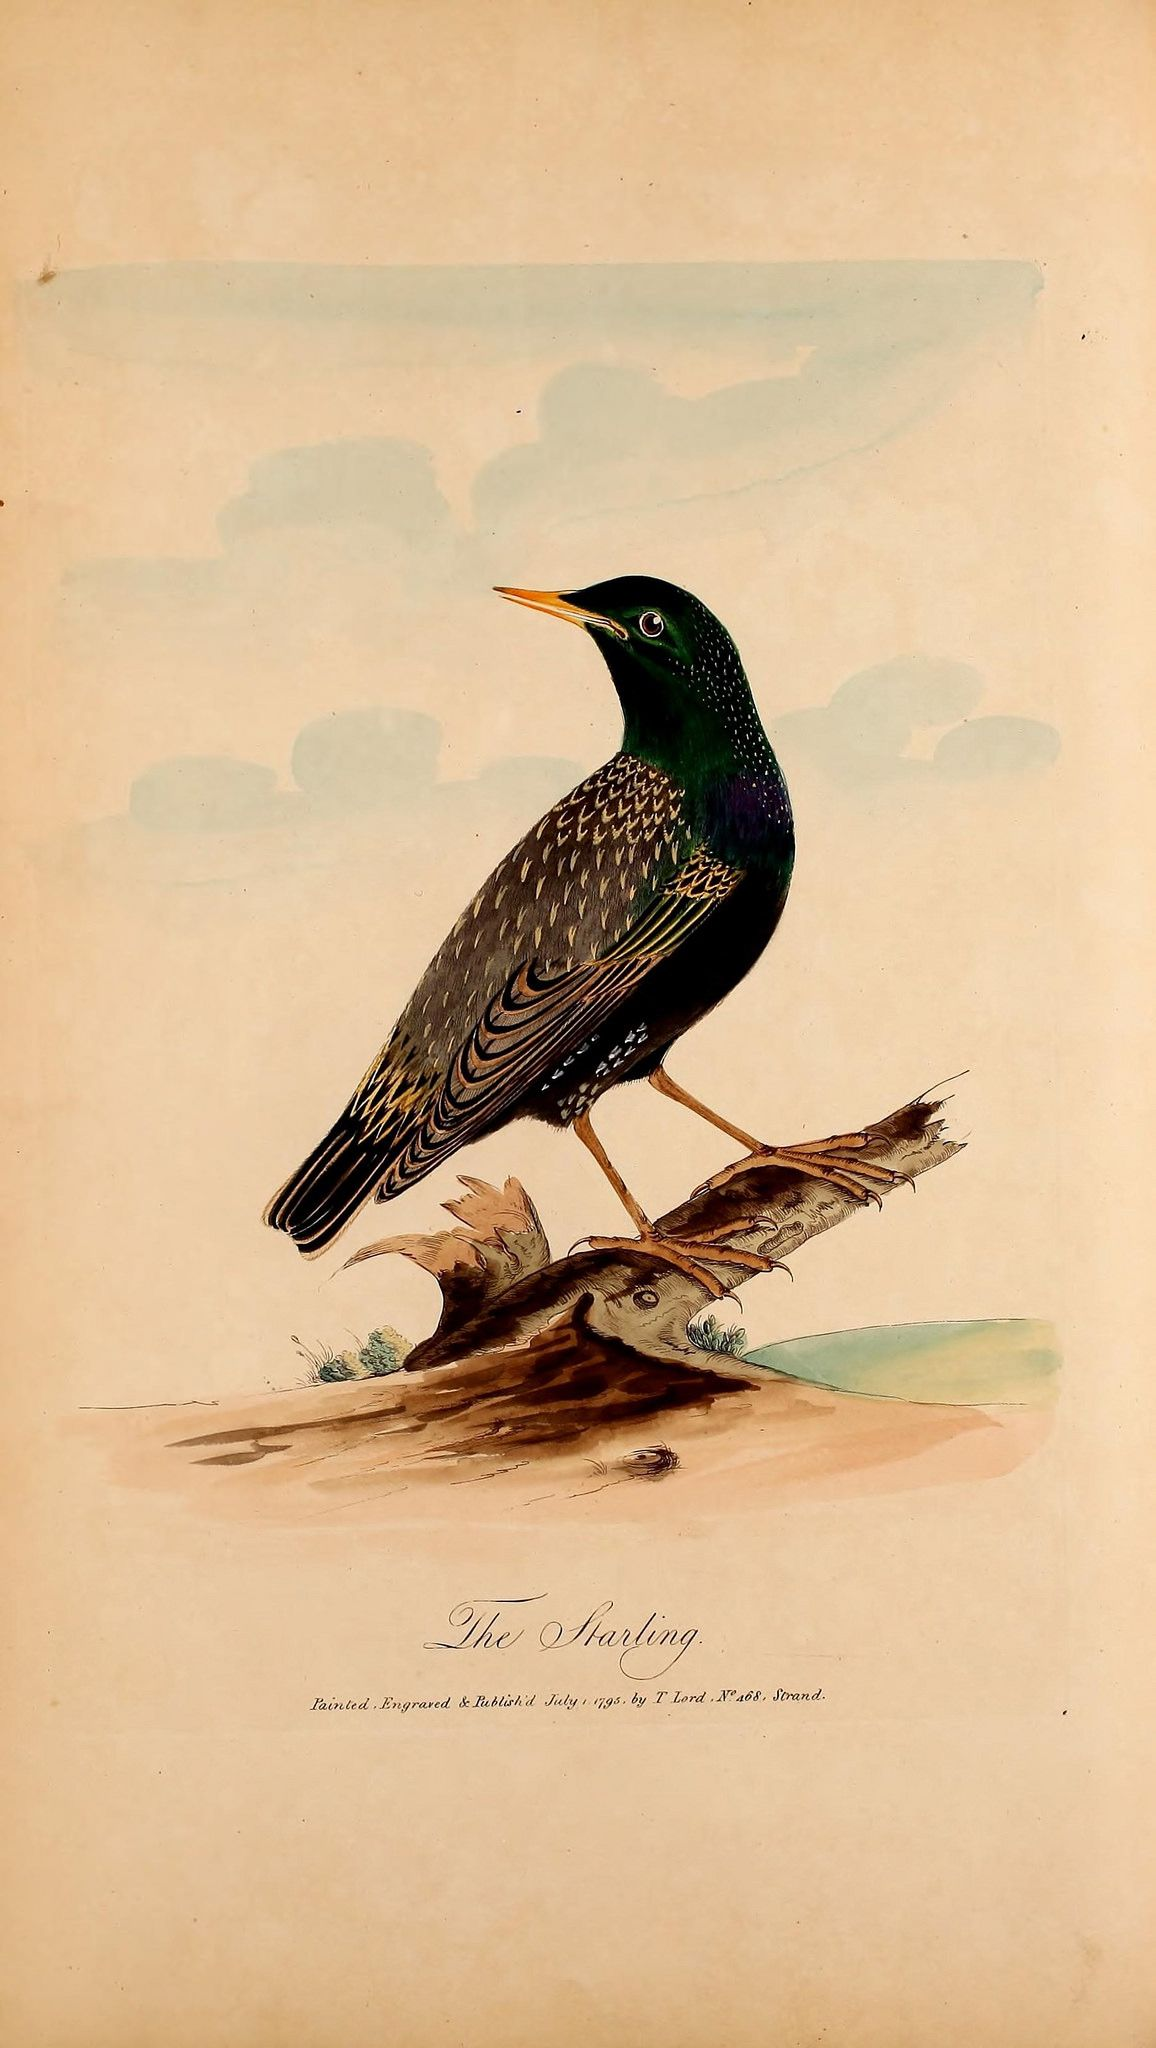 https://flic.kr/p/z4Sg1Z | n391_w1150 | Lord's Entire new system of ornithology, or, Oecumenical history of British birds ... /. [London] :pubd. May 14, 1791, by the author, no. 11, Maiden Lane, Covent Garden,[1791-1796]. biodiversitylibrary.org/page/48426208